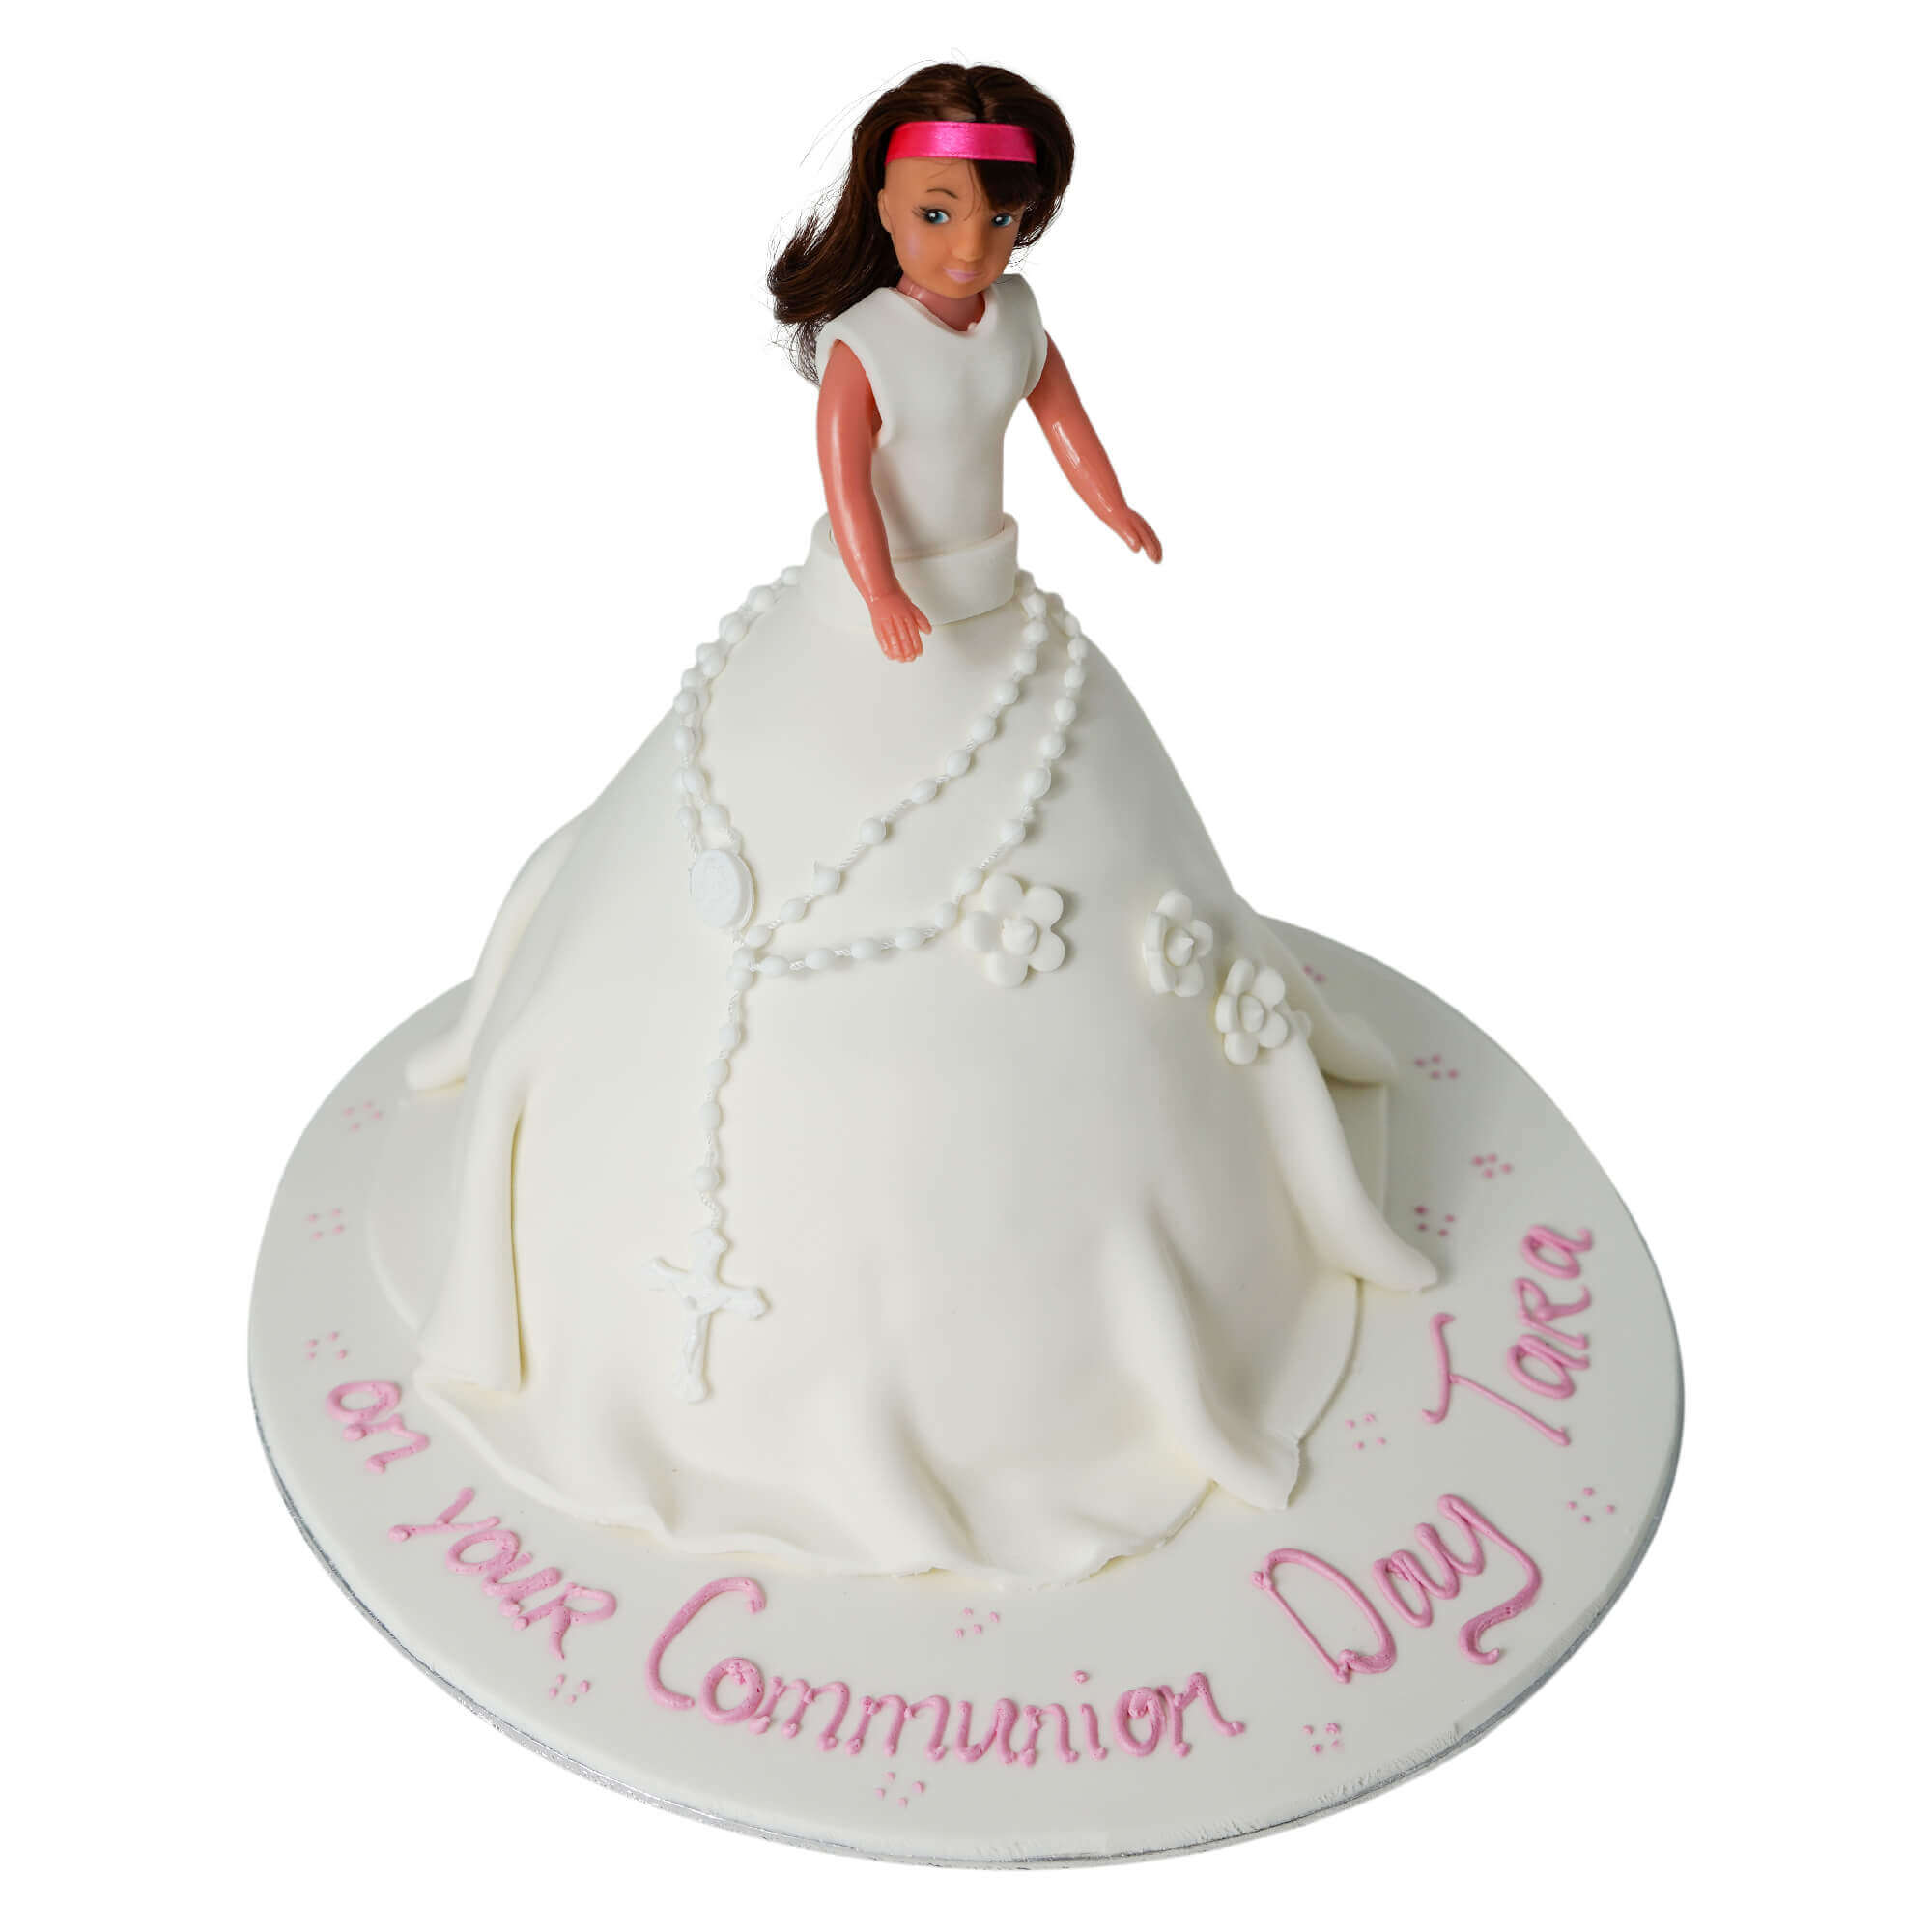 A communion cake in the shape of a girl's doll